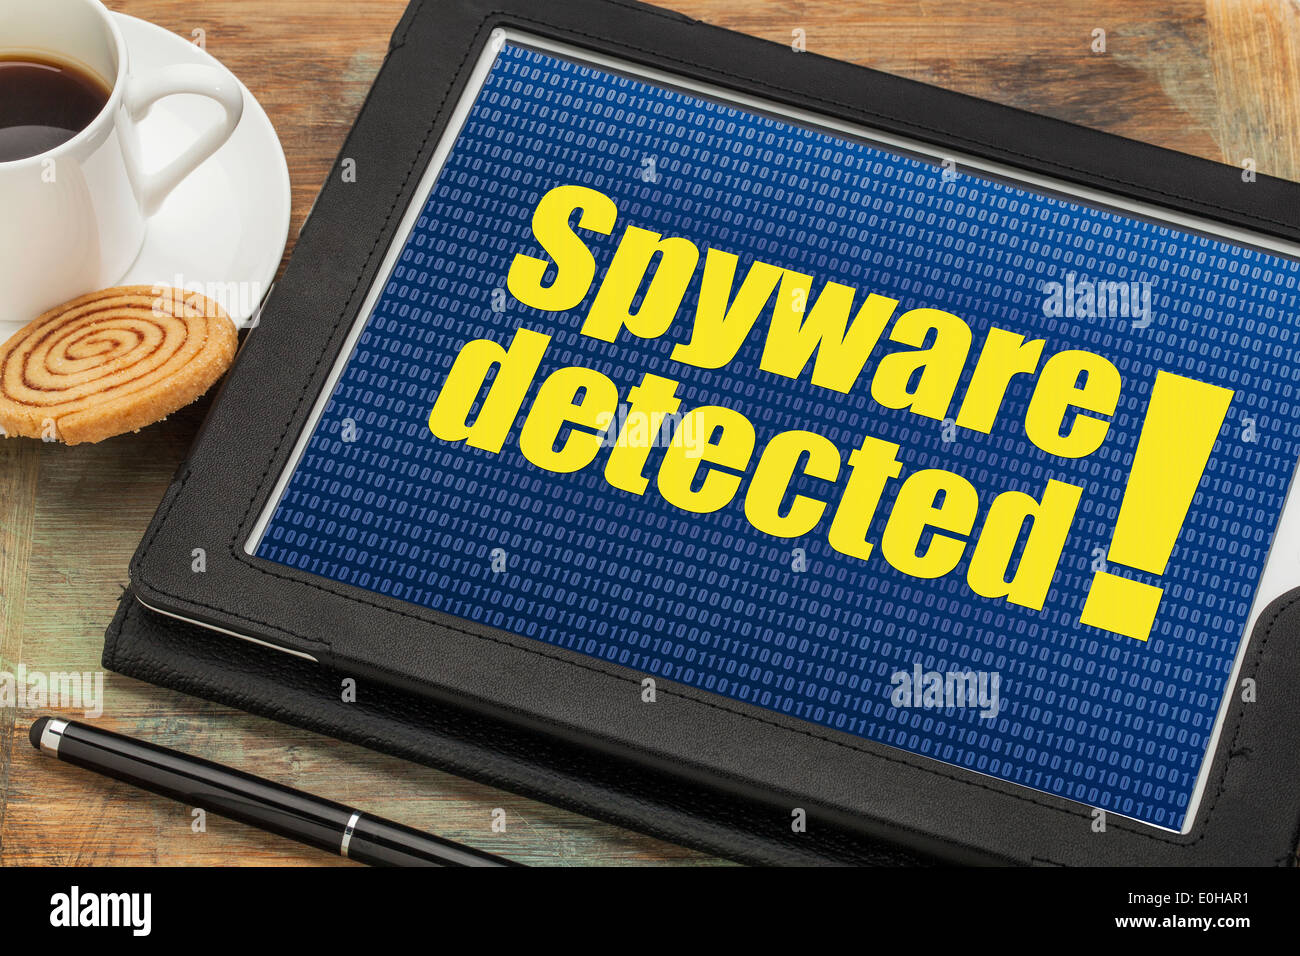 spyware detected alert on a digital tablet with a cup of coffee - Stock Image